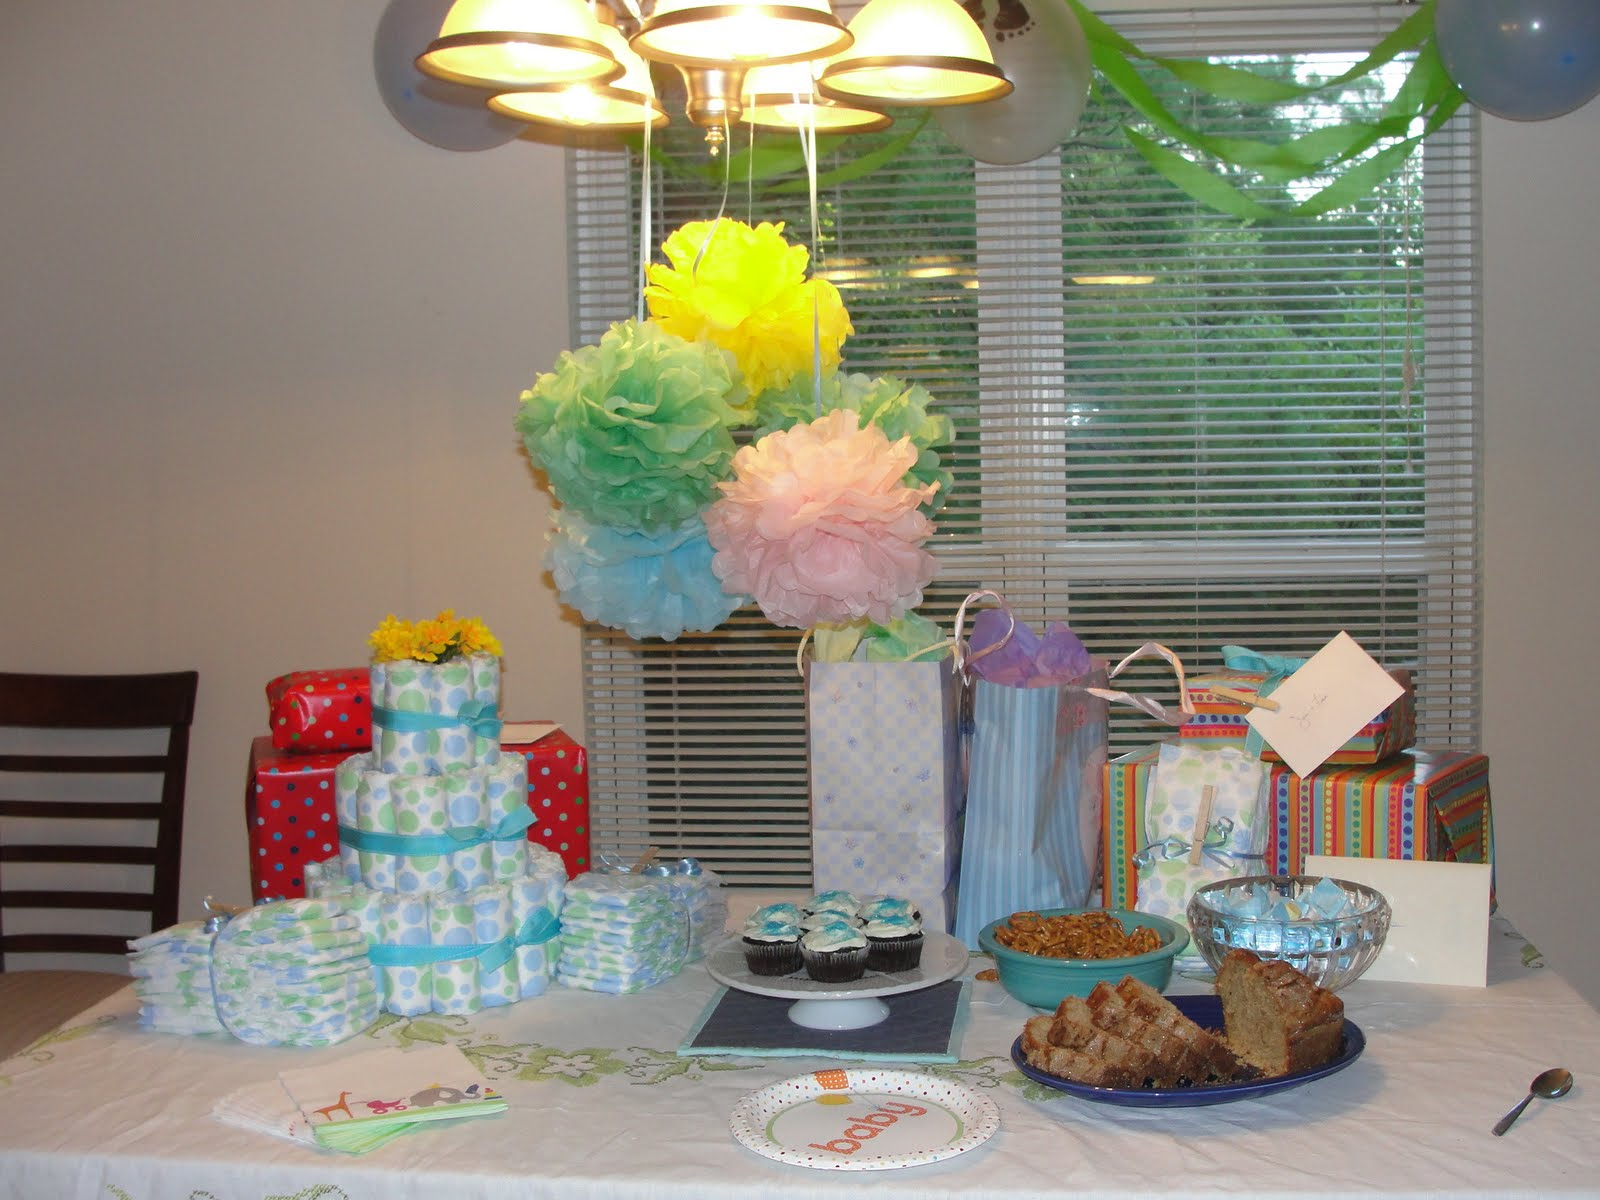 Stitchy Quilt Stuff: Baby Shower and Planter Favors